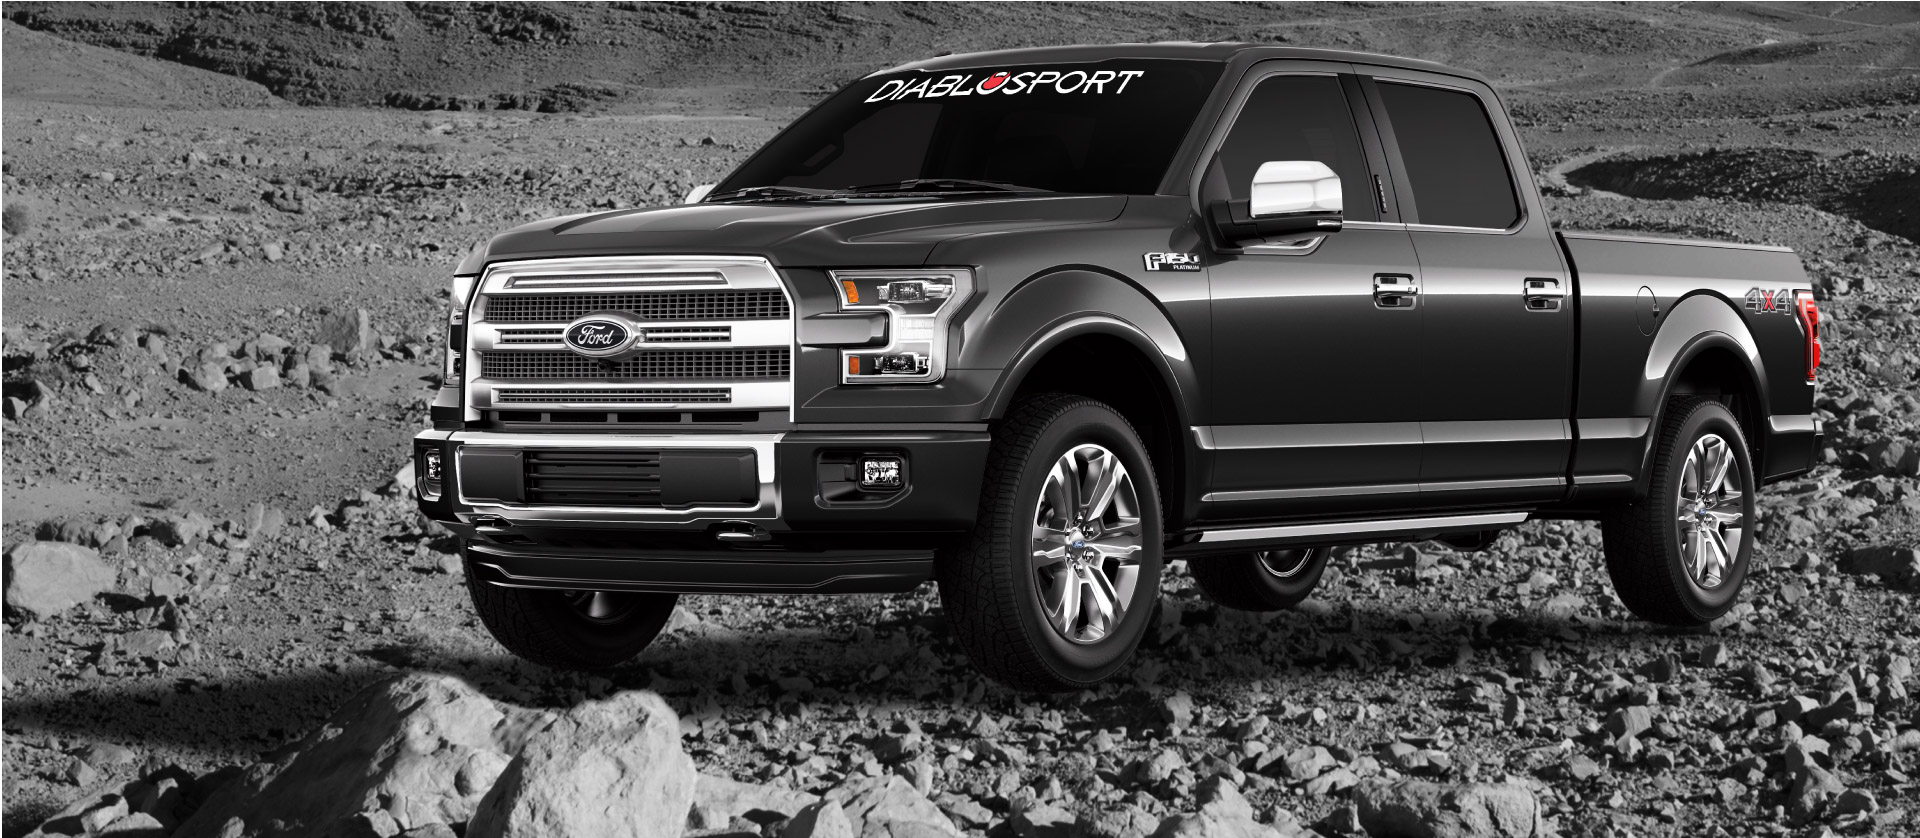 2015 2016 ford f150 2 7l 3 5l ecoboost tuning diablosport. Black Bedroom Furniture Sets. Home Design Ideas